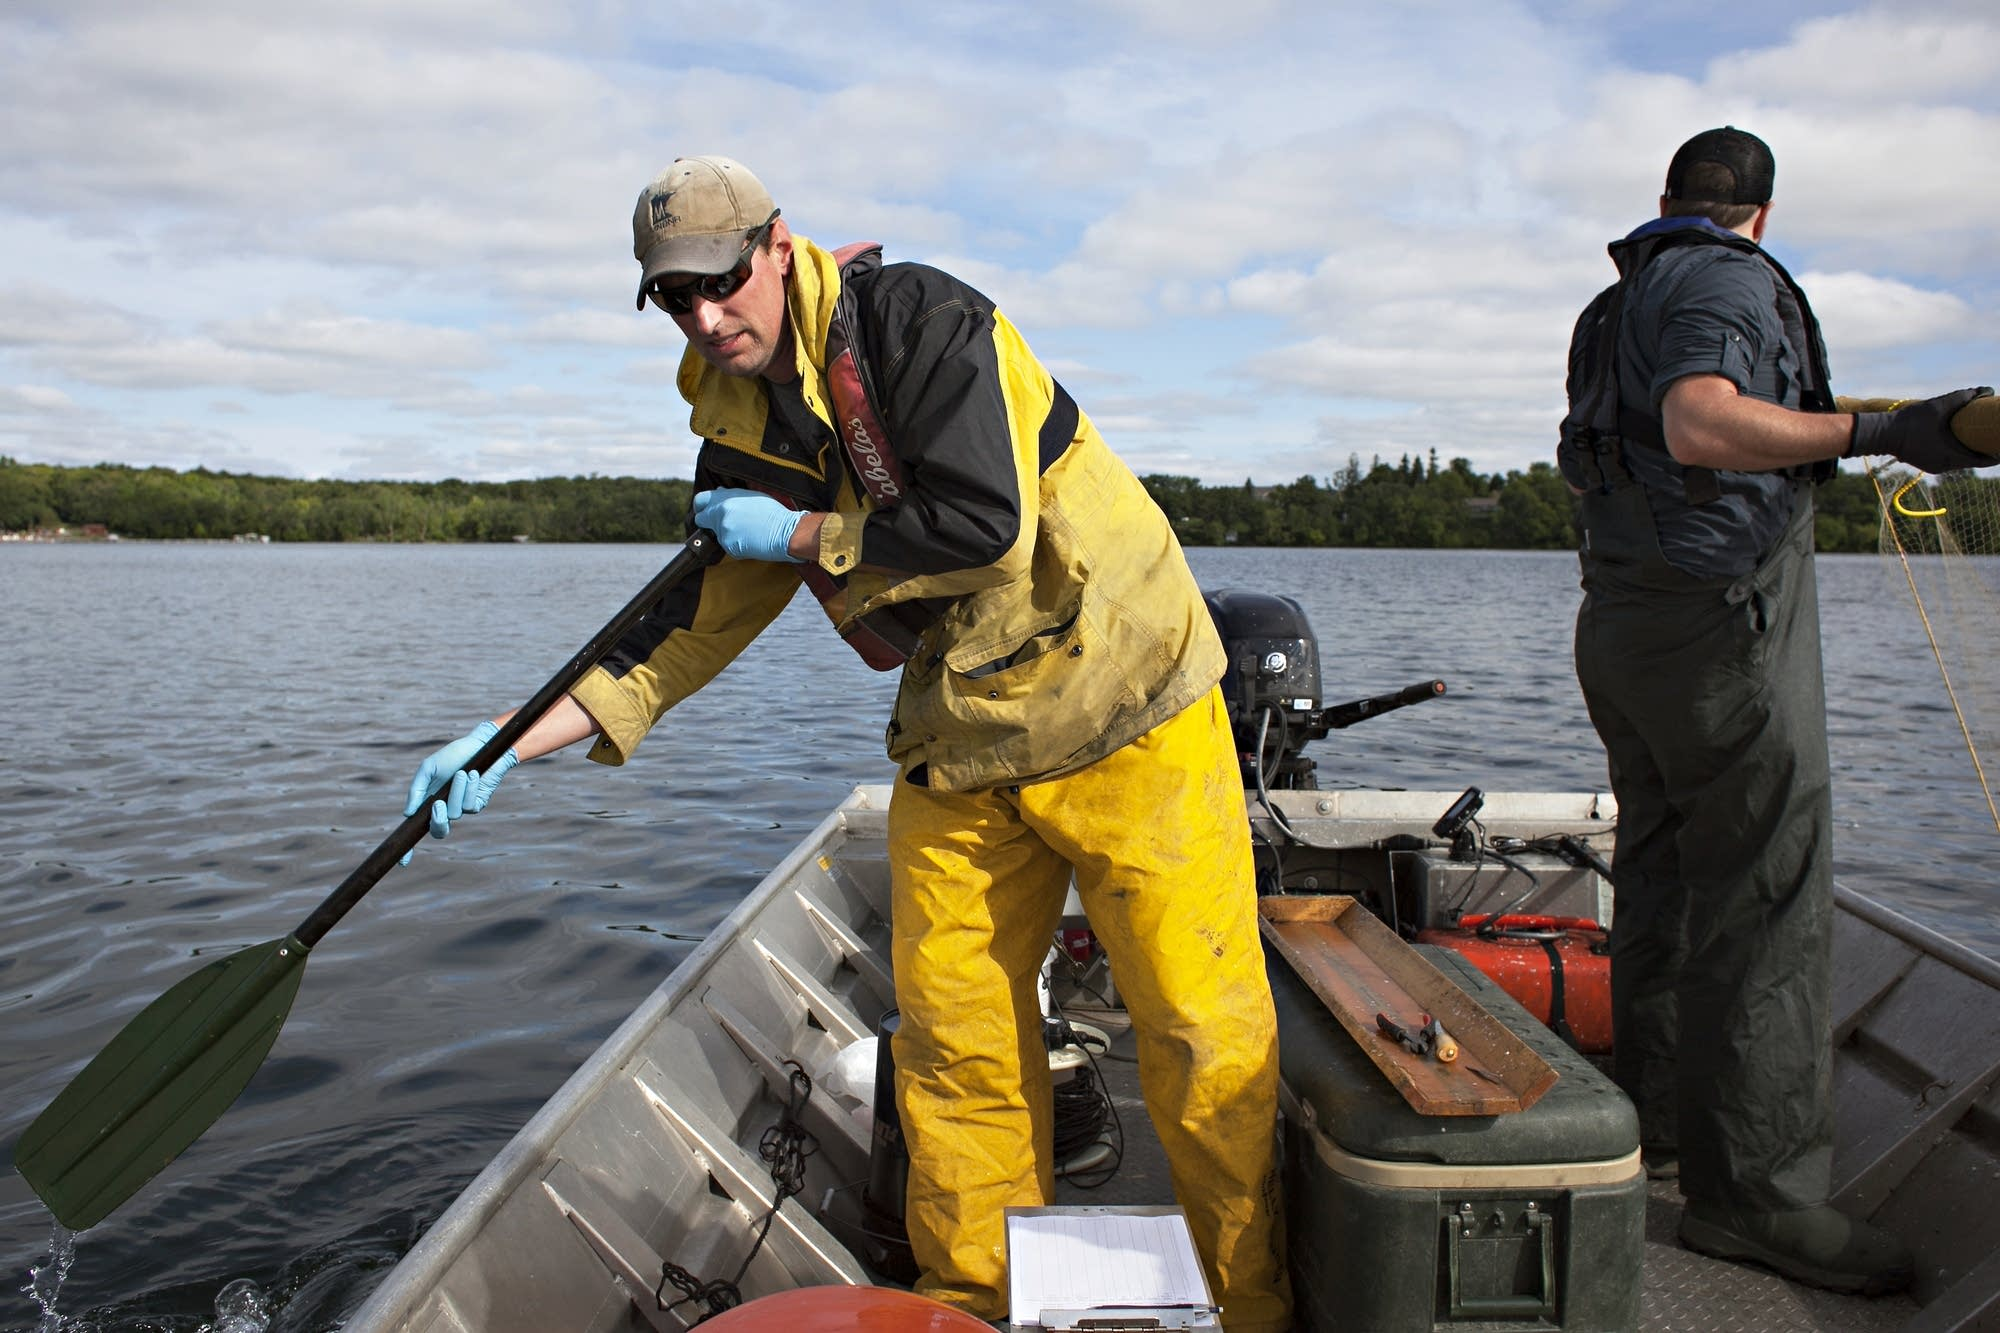 Biologist Will French, left, maneuvers a boat during a research outing.